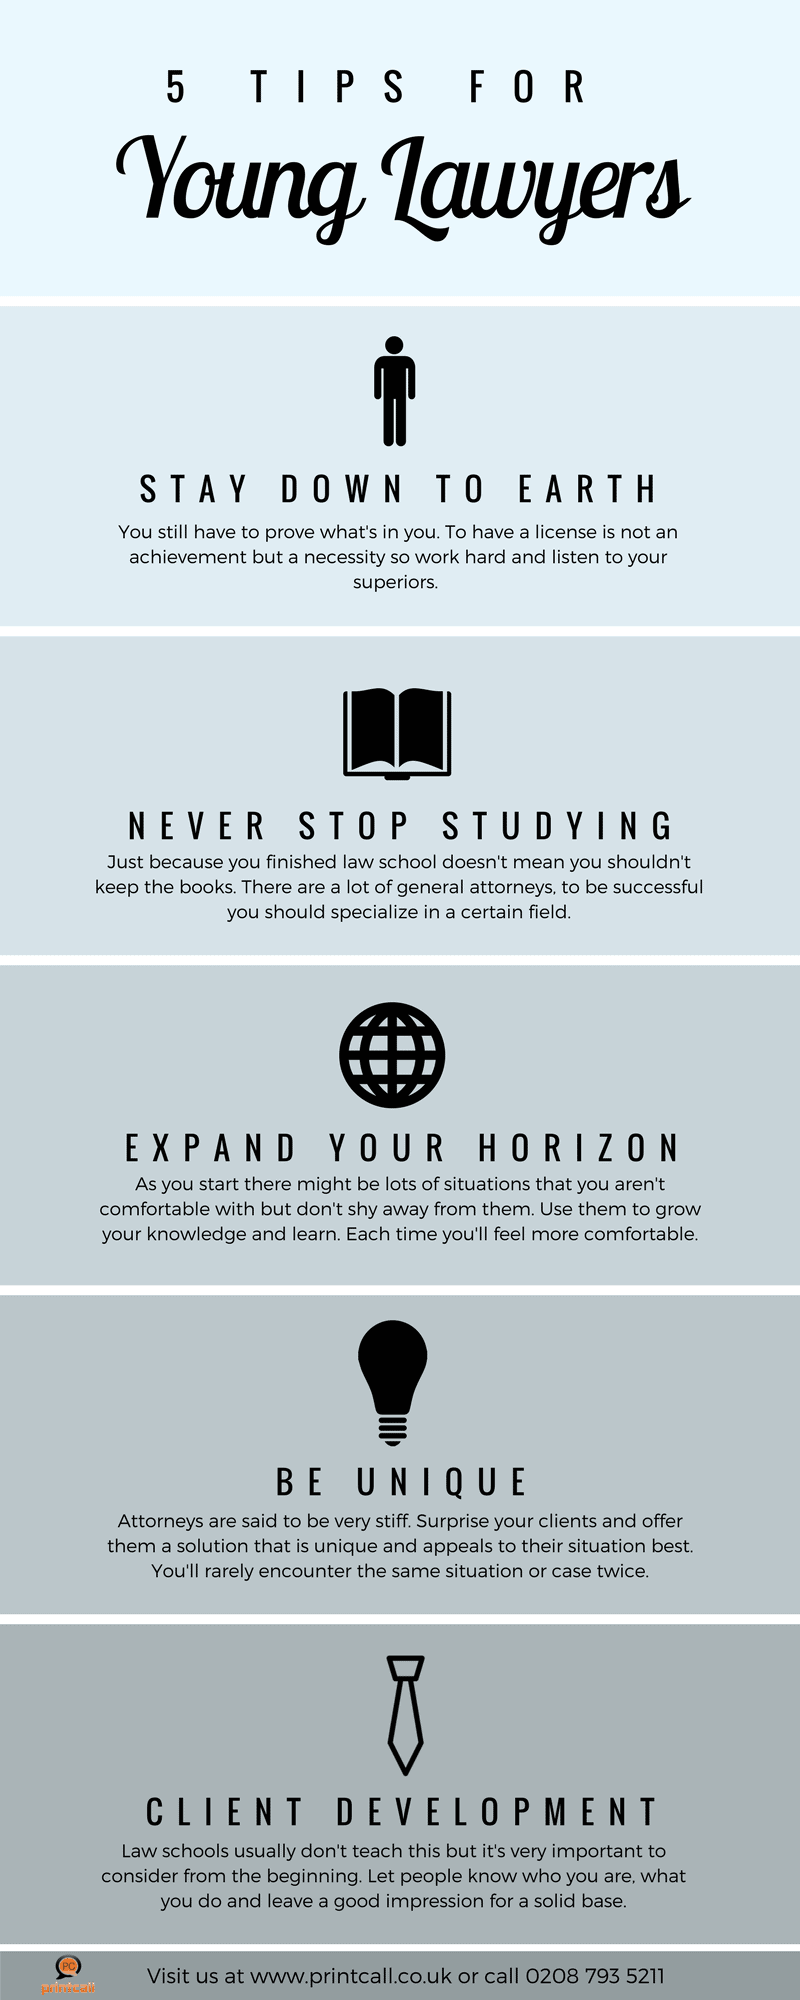 5 tips for young lawyers - infographic